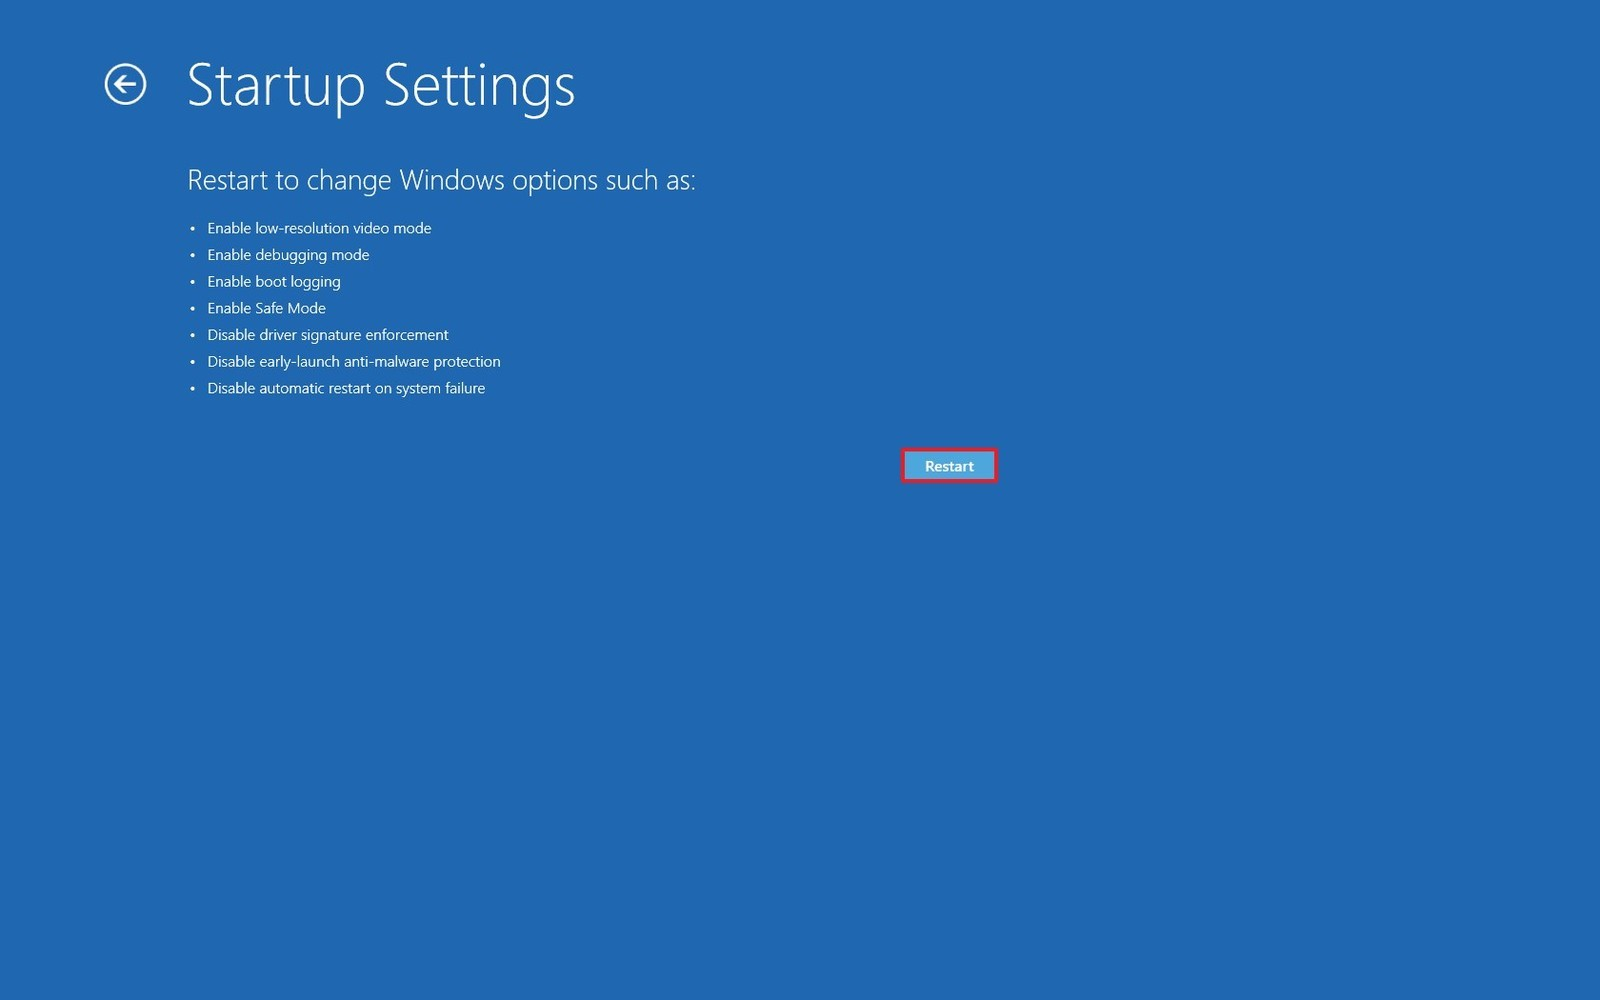 startup-settings-restart-option.jpg